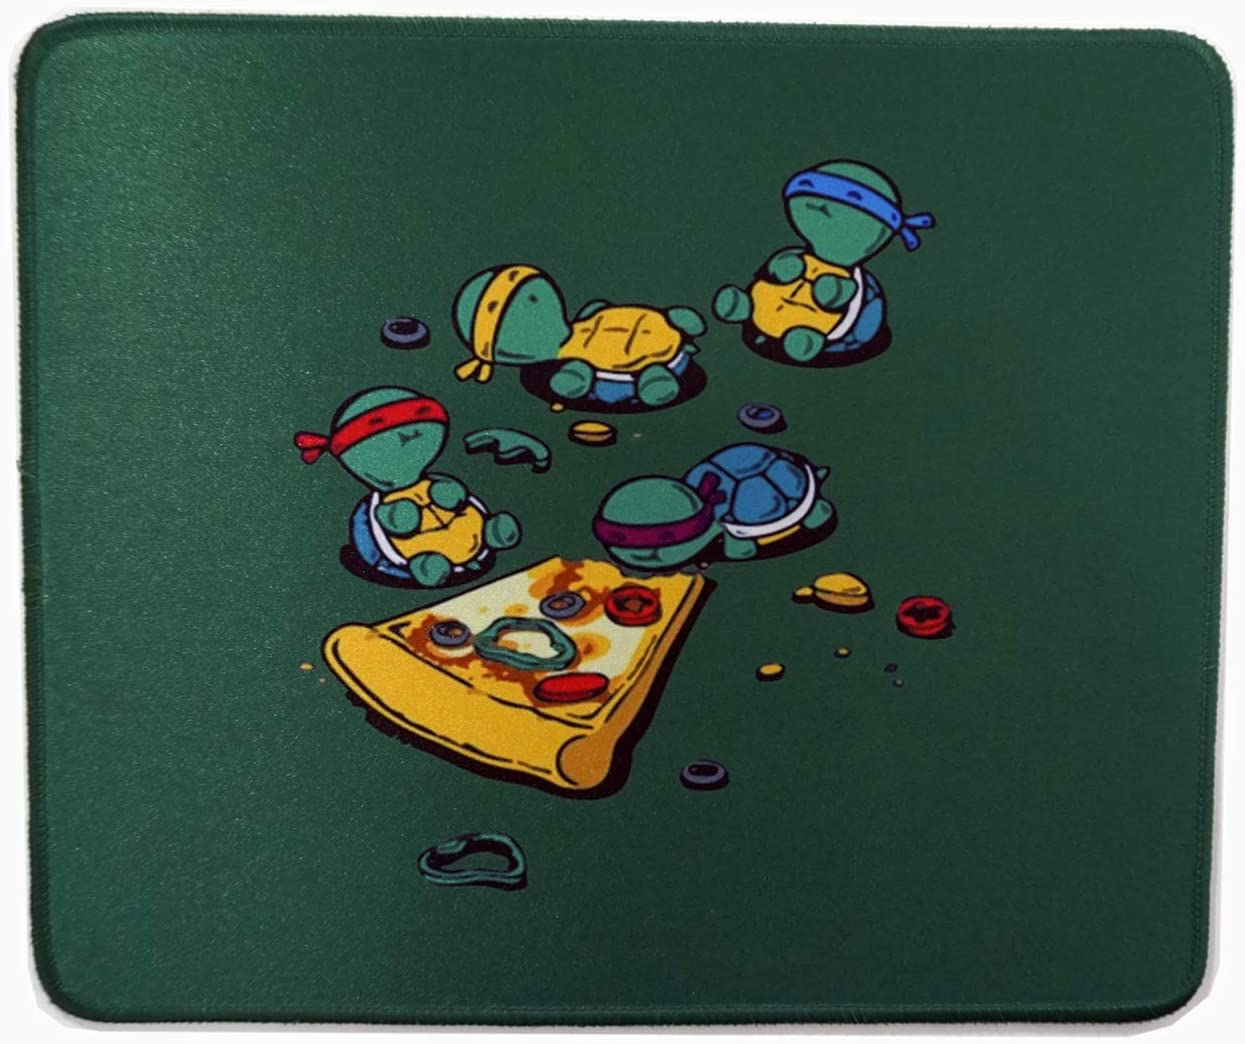 12 x 10 inches Teenage Mutant Ninja Turtles TMNT Eating Pizza Gaming Mouse Pad